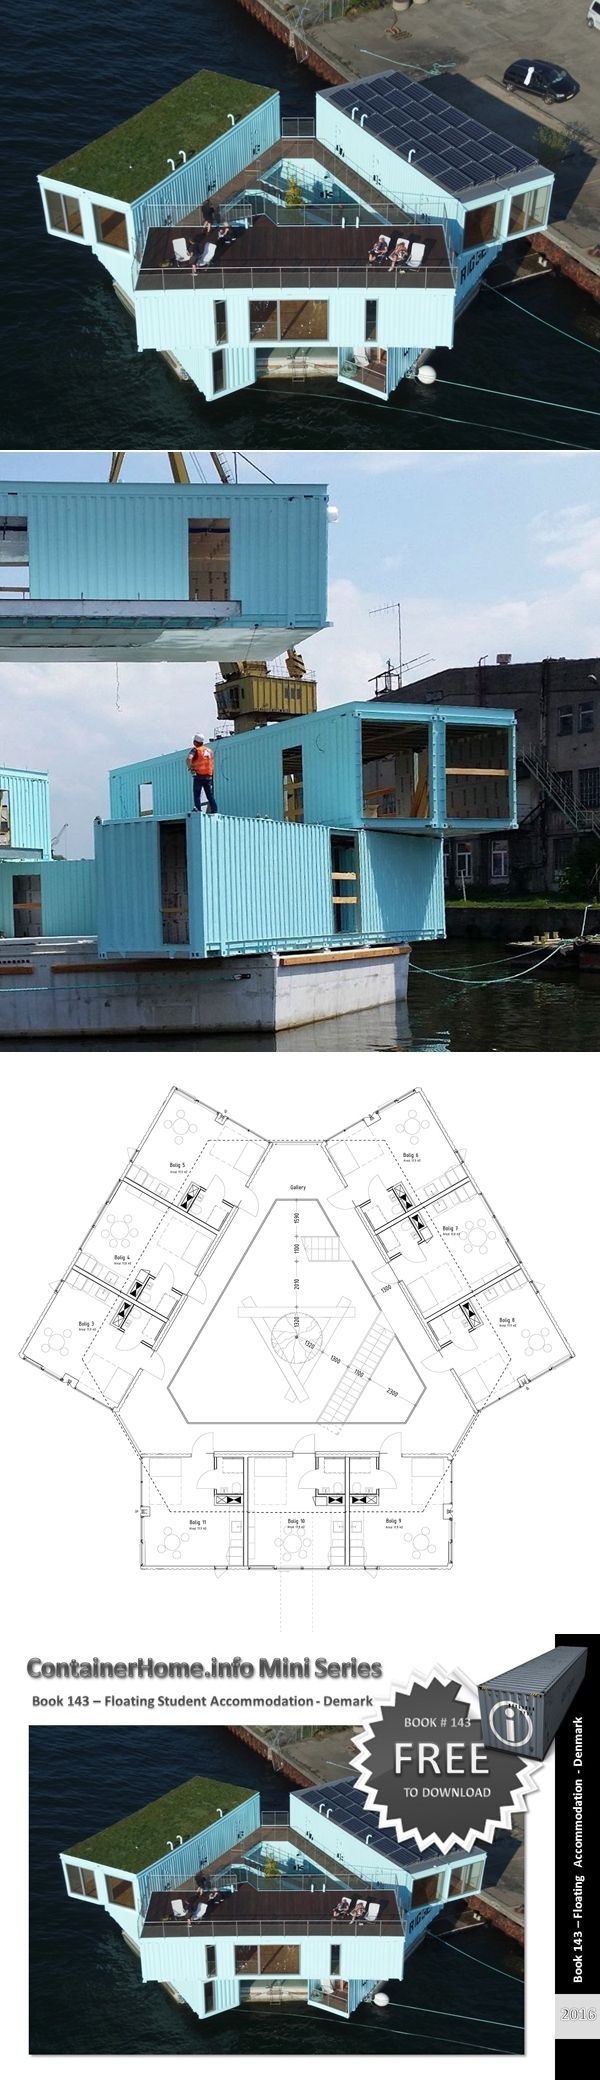 best 20+ container homes ideas on pinterest | sea container homes